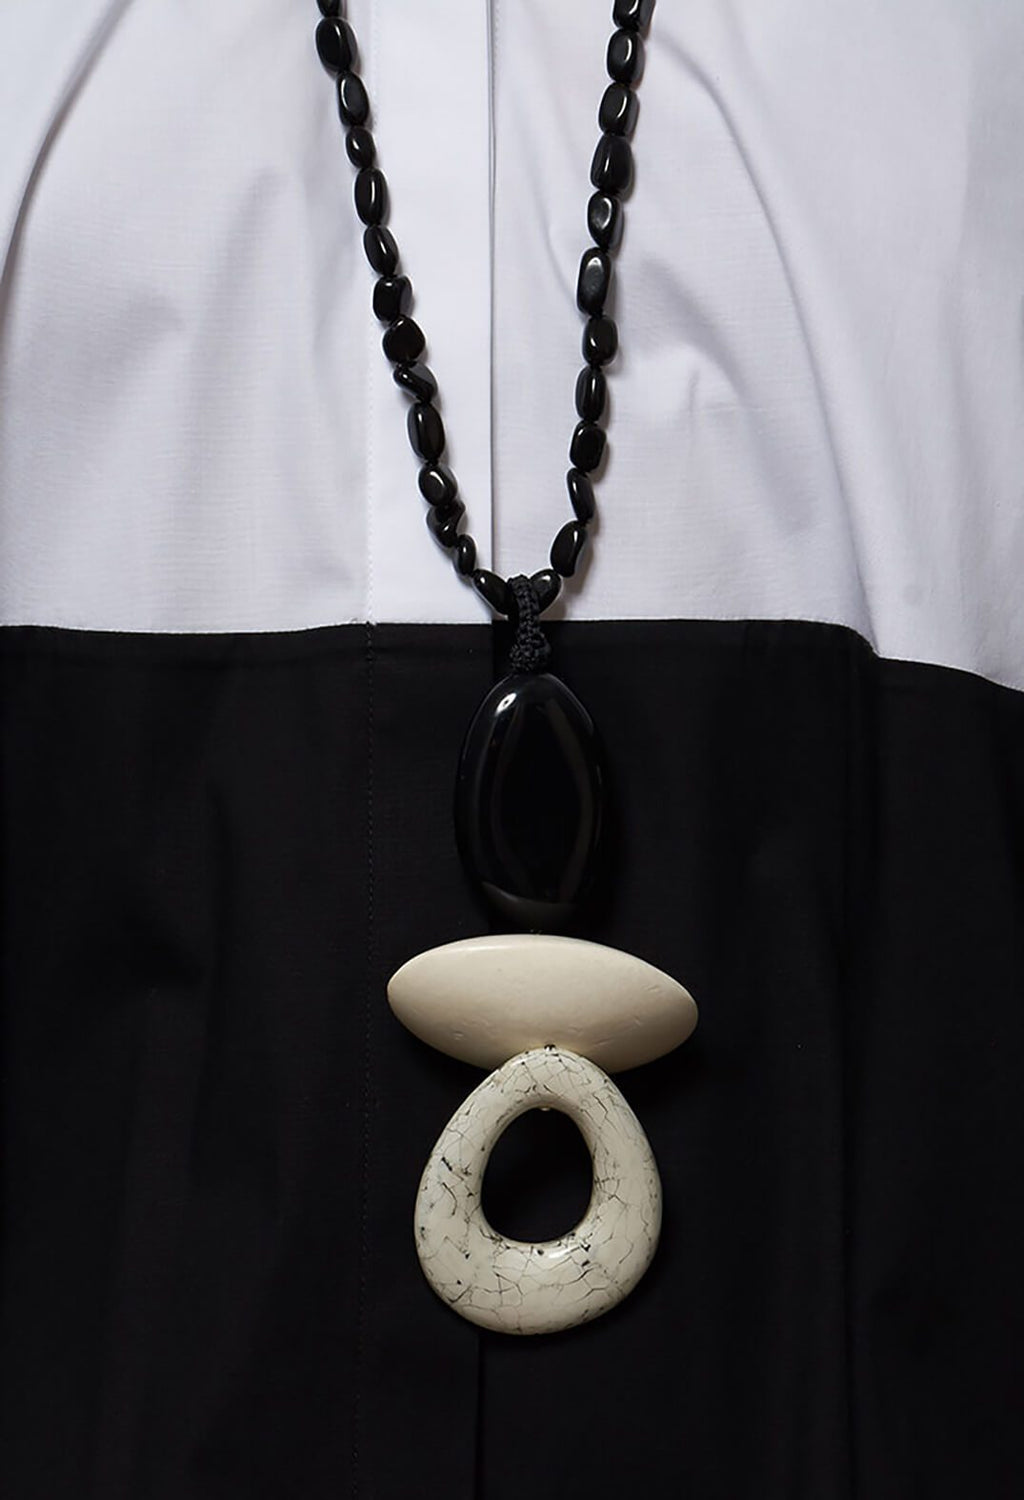 Onyx, Resin, Wooden Element and Egg Shell Element with Resin Necklace in Black